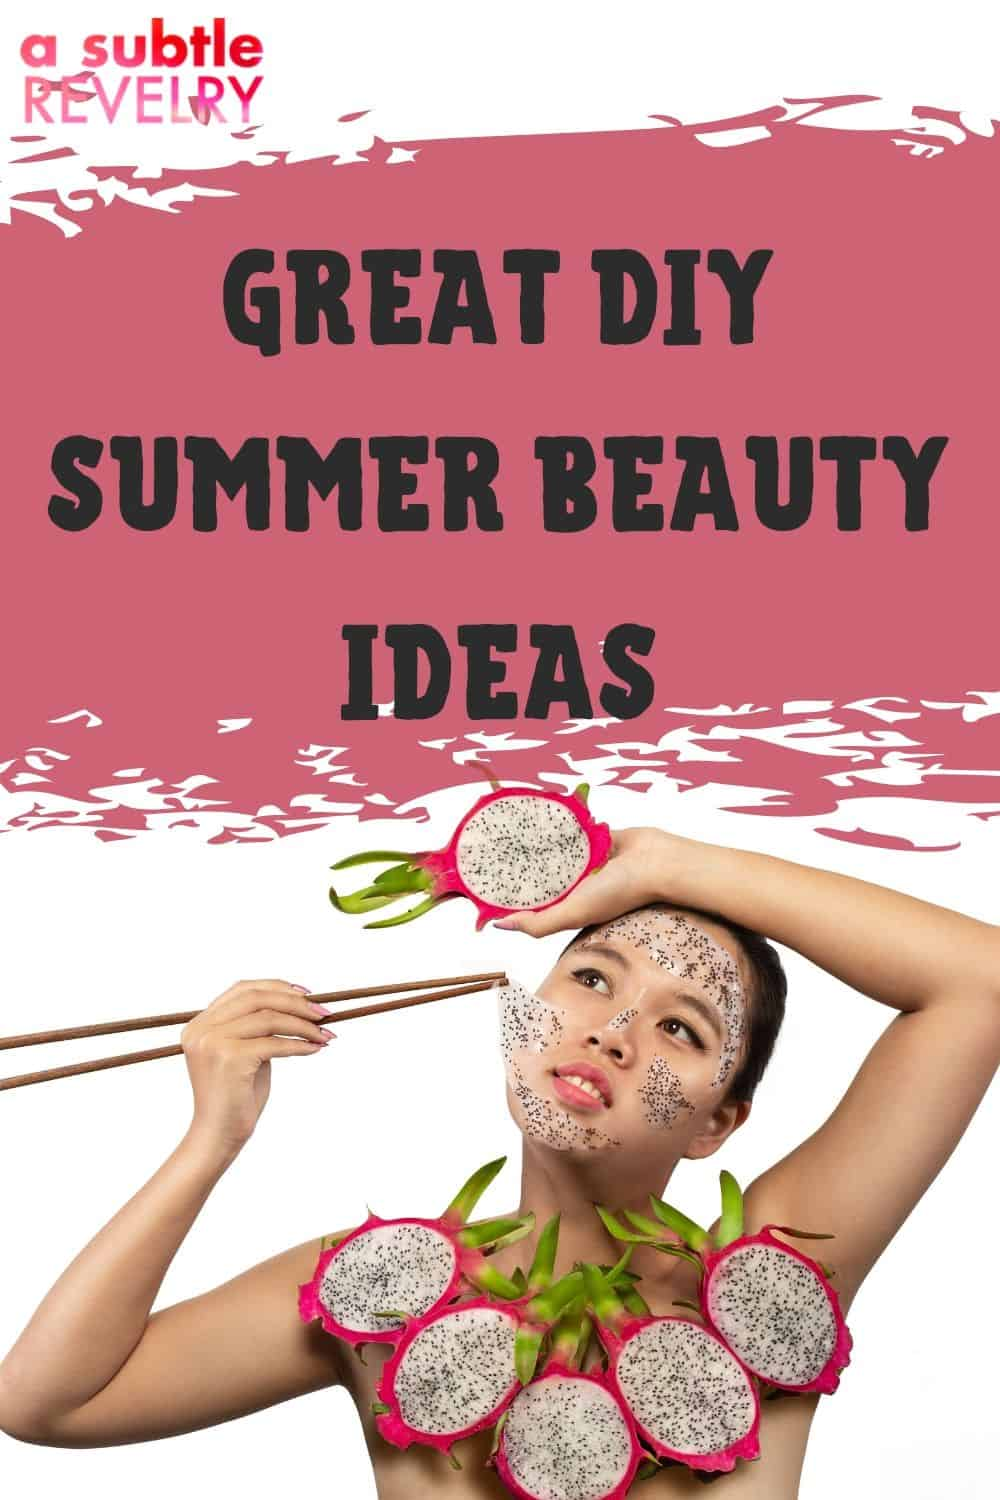 Great DIY Summer Beauty Ideas